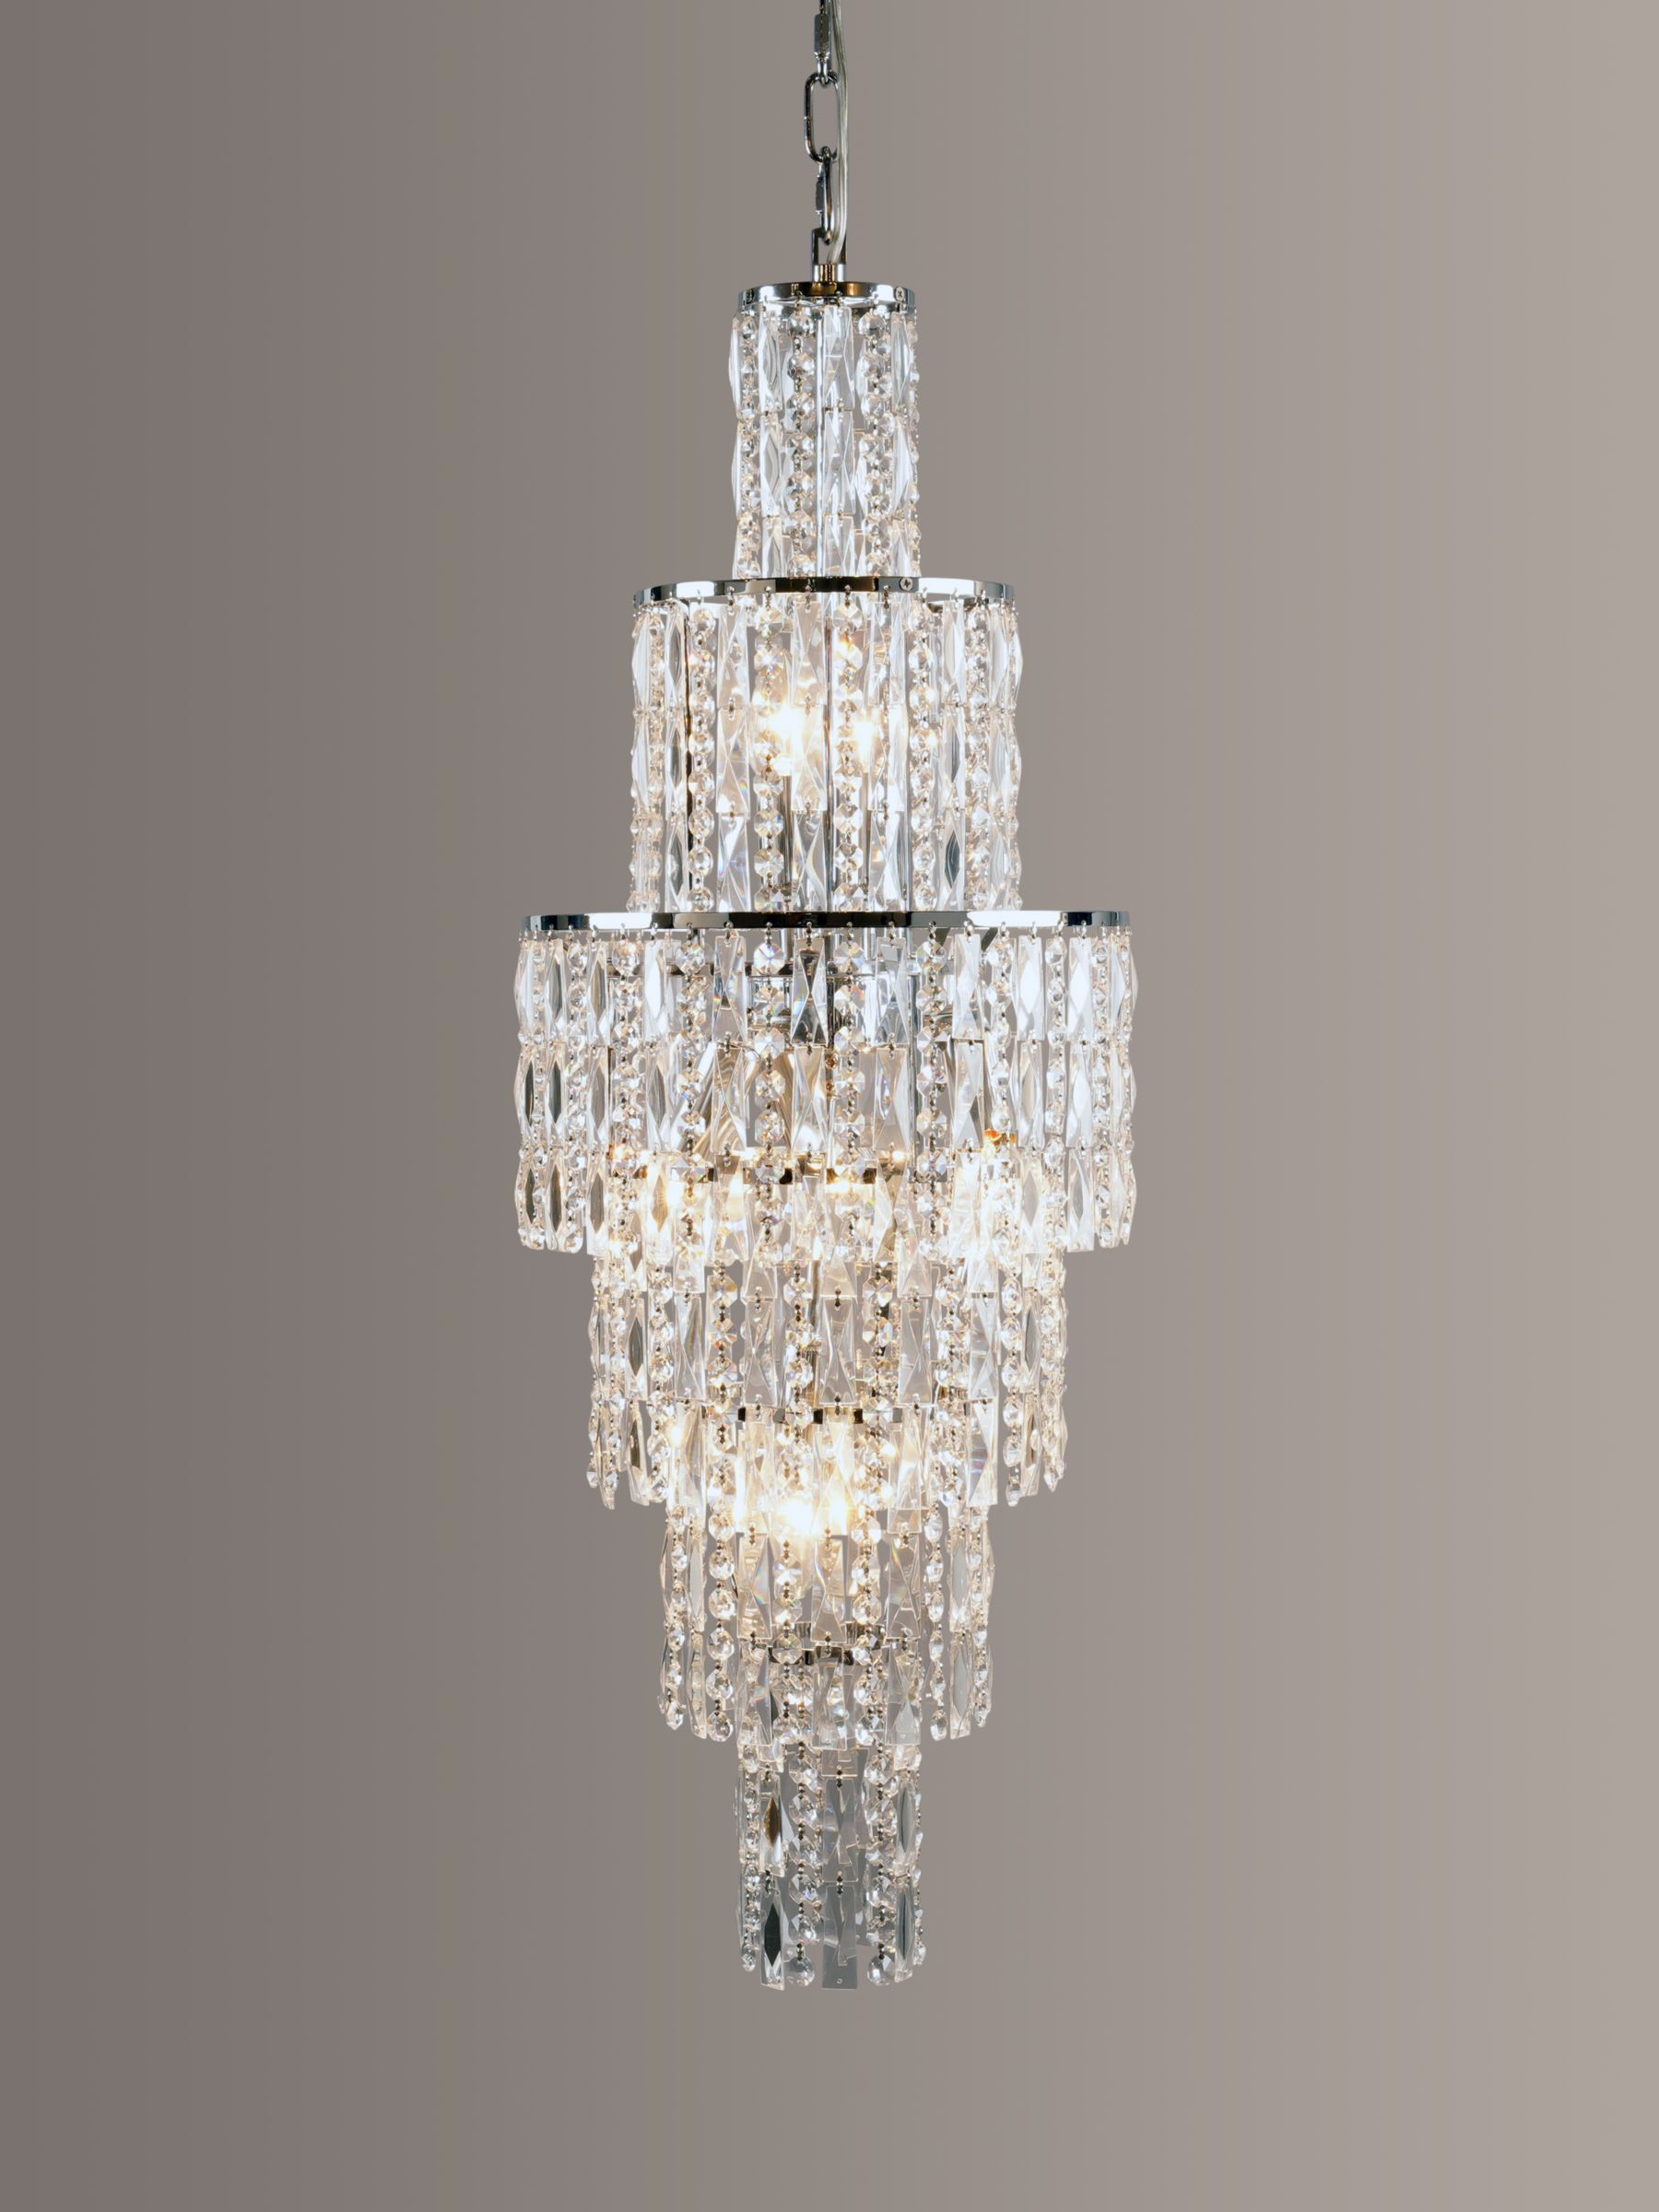 Impex Impex New York Crystal Chandelier Ceiling Light, Clear/Chrome